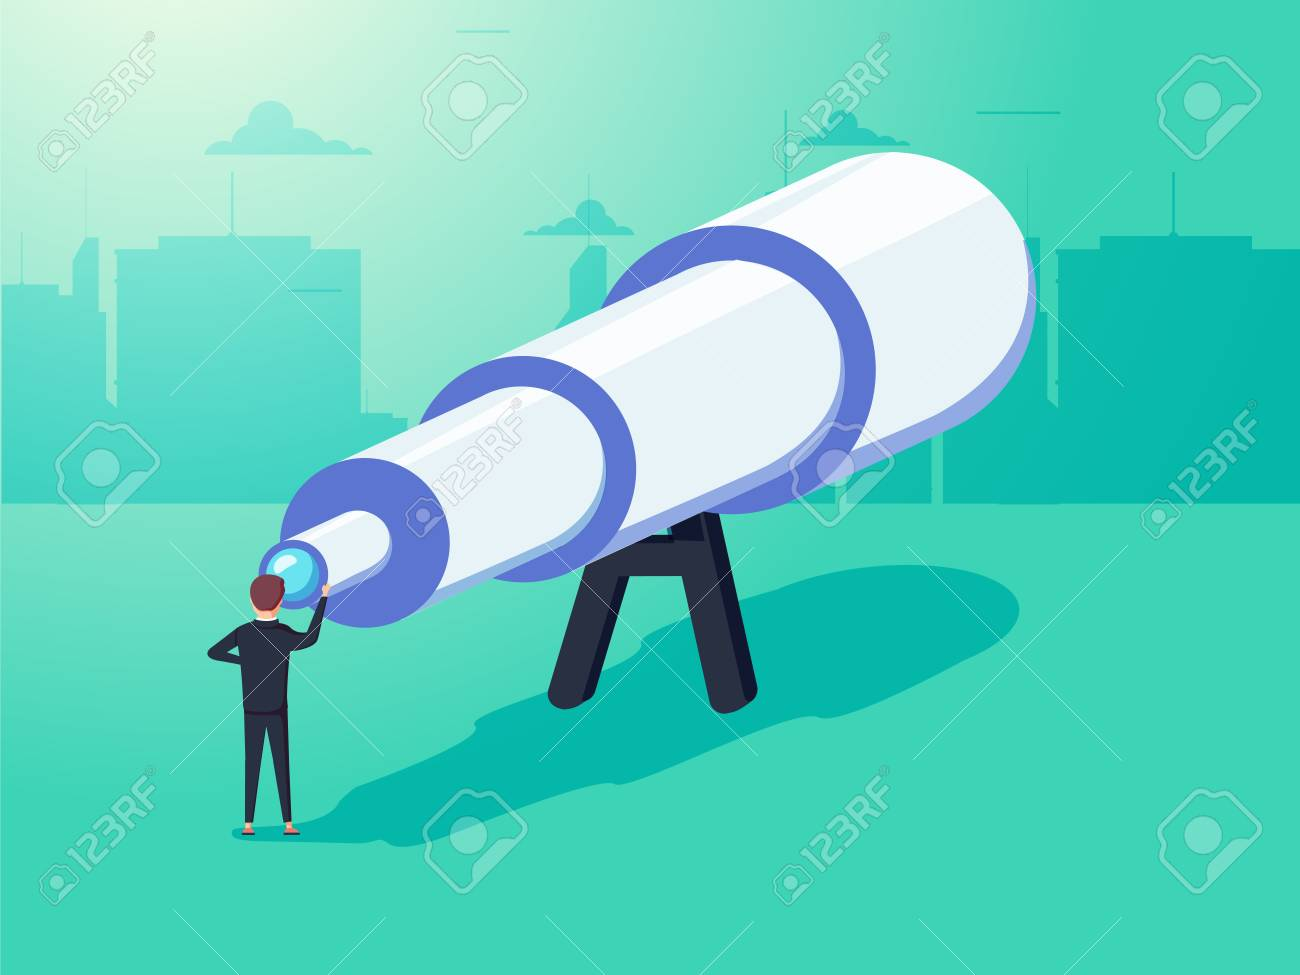 Vision concept in business with vector icon of businessman and